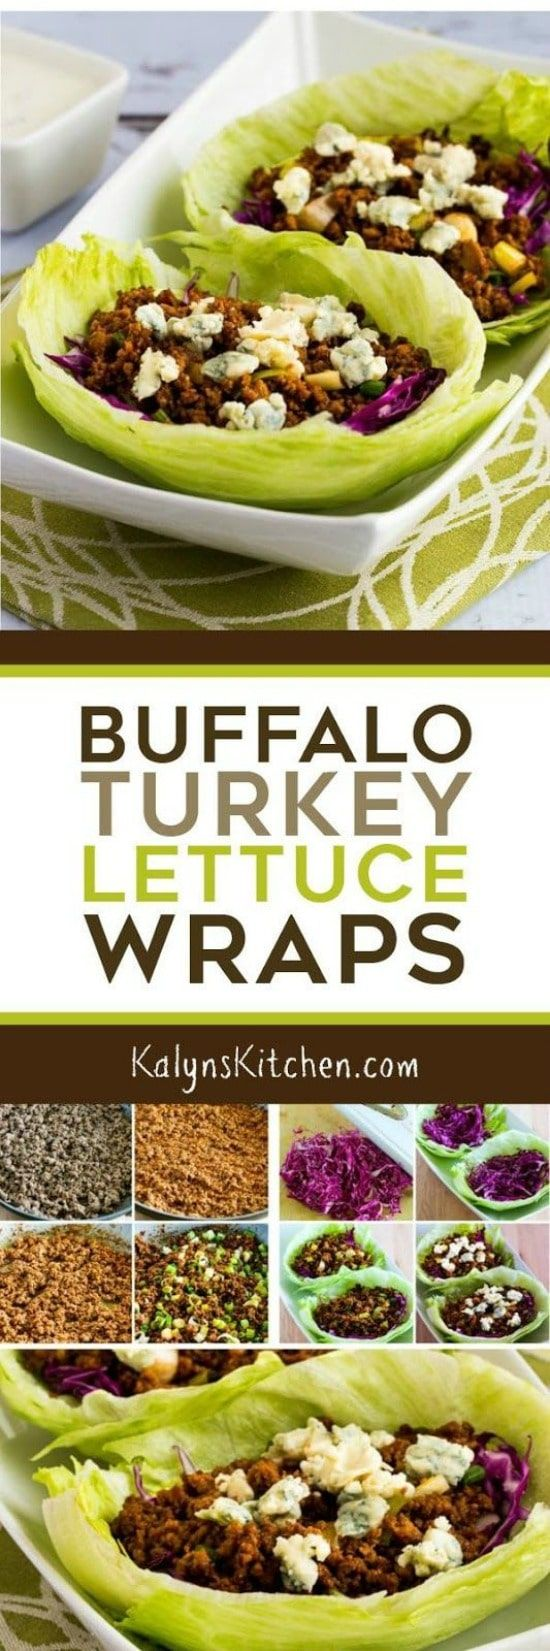 Buffalo Turkey Lettuce Wraps are low-carb, Keto, low-glycemic, gluten-free, and South Beach Diet friendly! And Buffalo Chicken fans will love this dish! [found on KalynsKitchen.com] #KalynsKitchen #BuffaloTurkeyLettuceWraps #BuffaloLettuceWraps #LettuceWraps